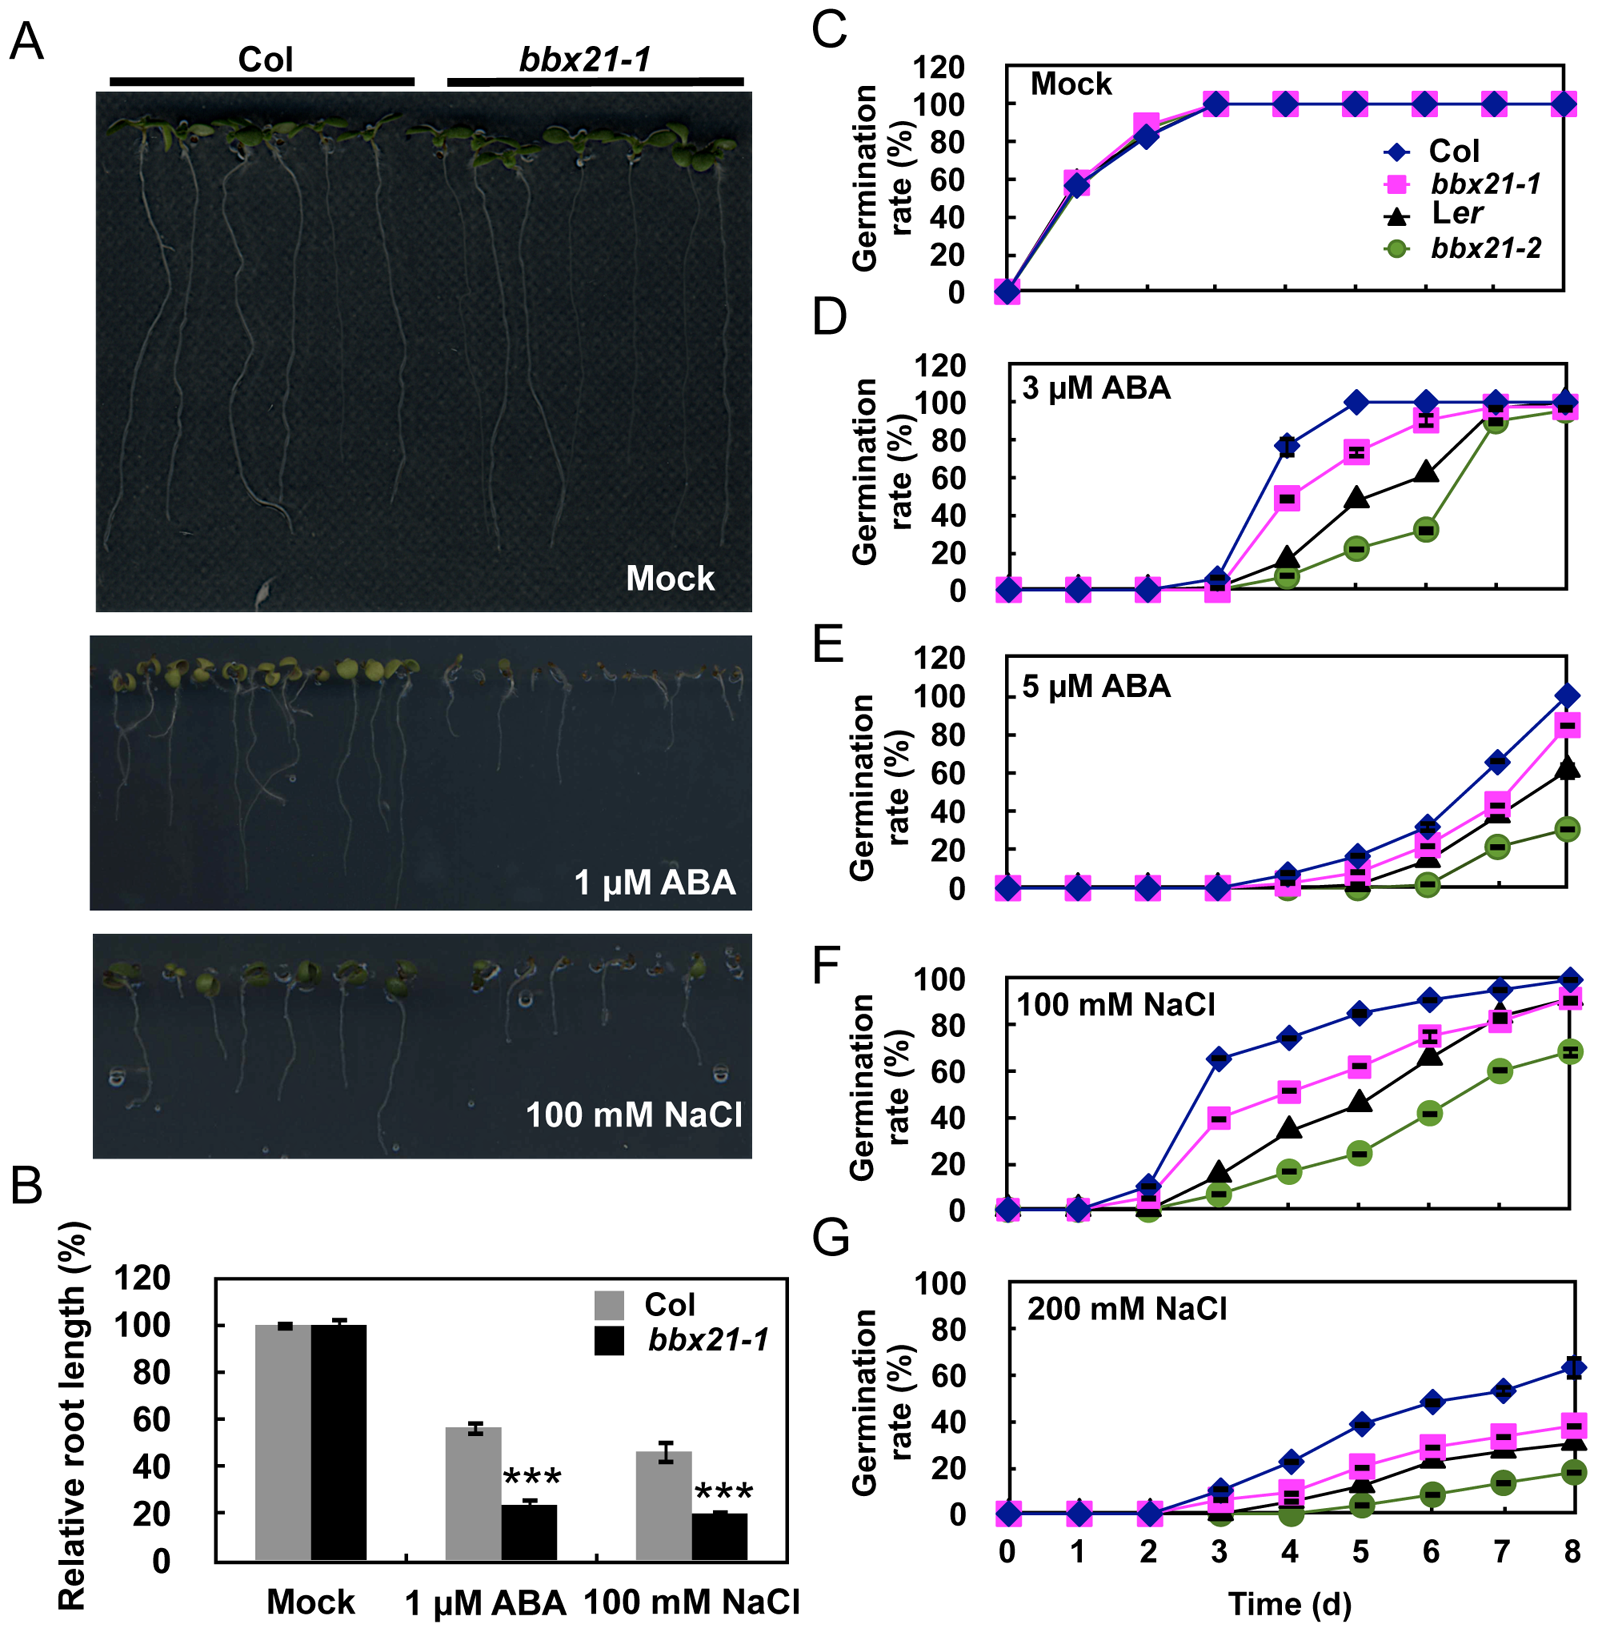 The <i>bbx21</i> mutants are hypersensitive to ABA and NaCl during germination.